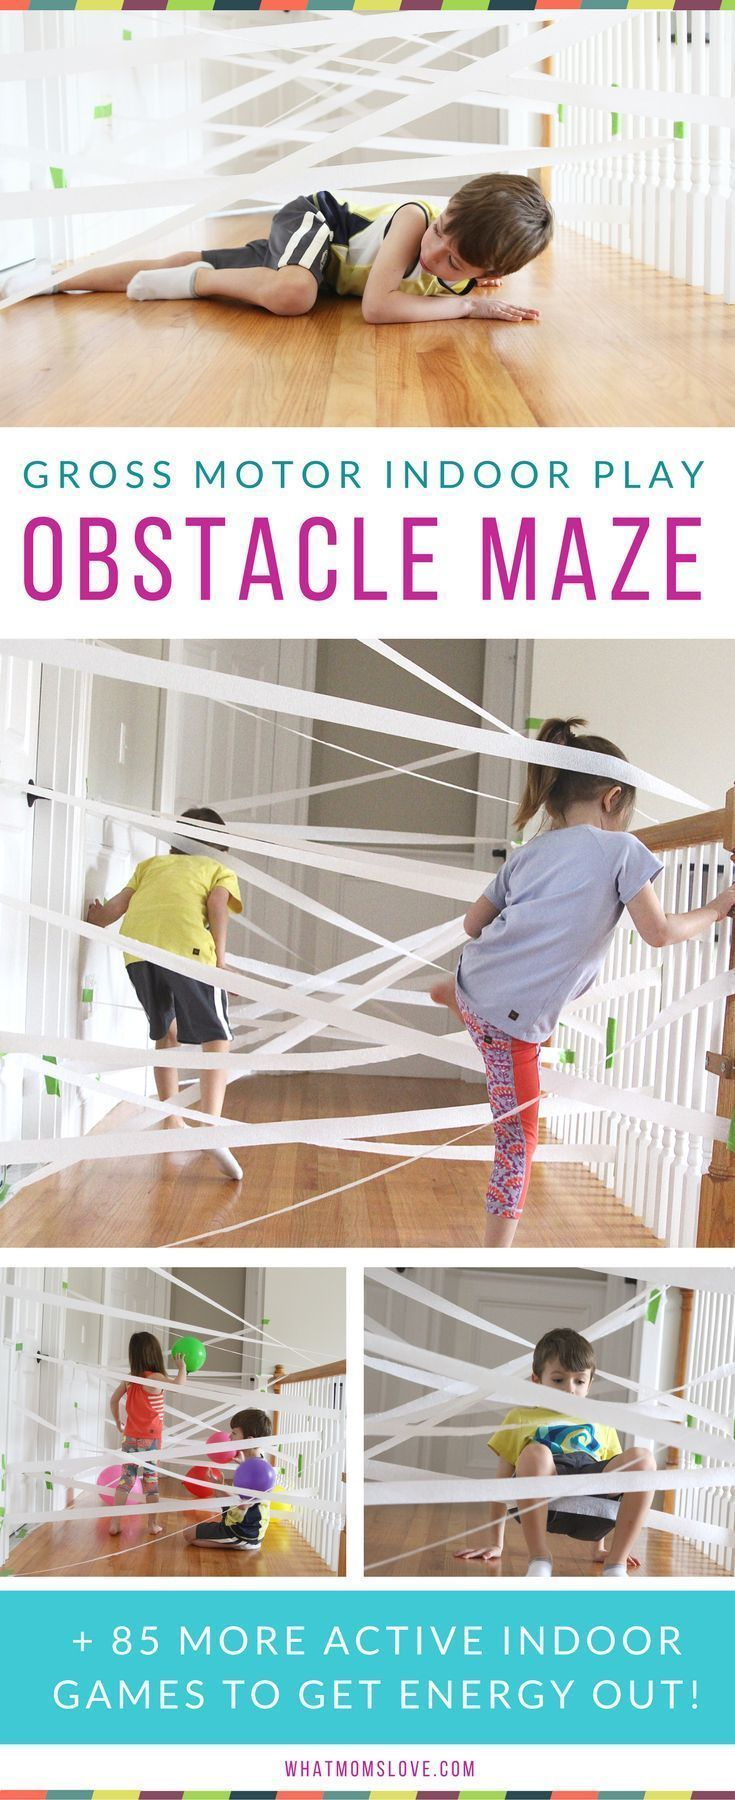 indoor activities for kids. Obstacle Maze Plus All The Best Indoor Activities For Kids. Fun Ways To Be Active On Rainy Days Or Snow Days! Kids